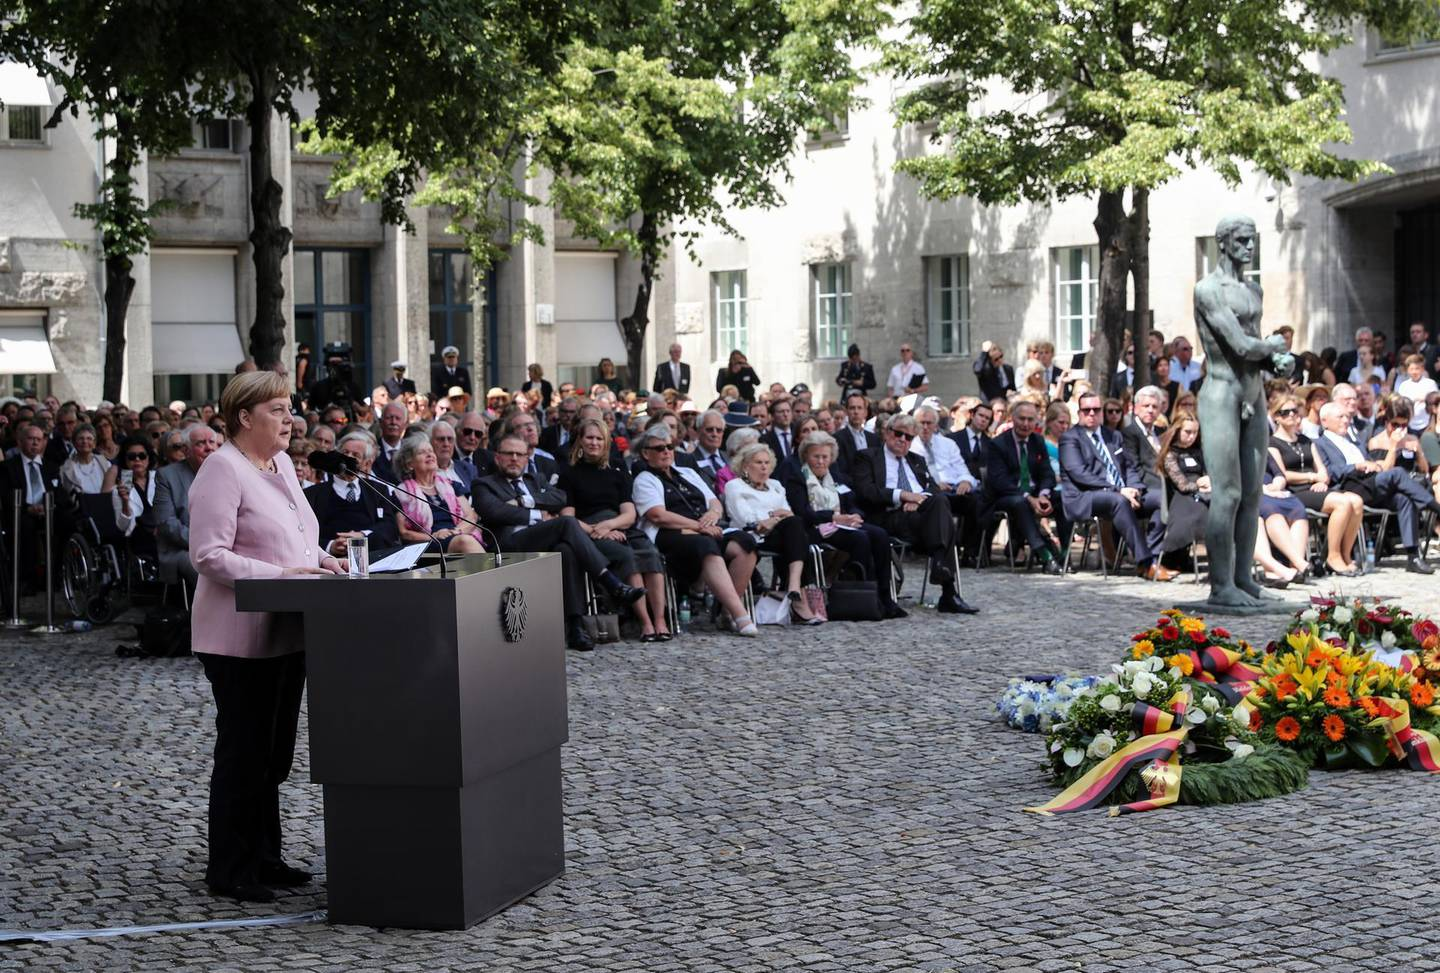 epa07729224 German Chancellor Angela Merkel speaks during a commemoration service for the 75th anniversary of the attempted assassination of Adolf Hitler by the German anti-Nazi resistance, at the Bendlerblock in Berlin, Germany, 20 July 2019. The anniversary commemorates the members of the resistance, led by Claus von Stauffenberg, who were arrested and executed after a failed assassination attempt on Adolf Hitler that took place on 20 July 1944. Von Stauffenberg was executed in the Bendlerblock courtyard.  EPA/FELIPE TRUEBA